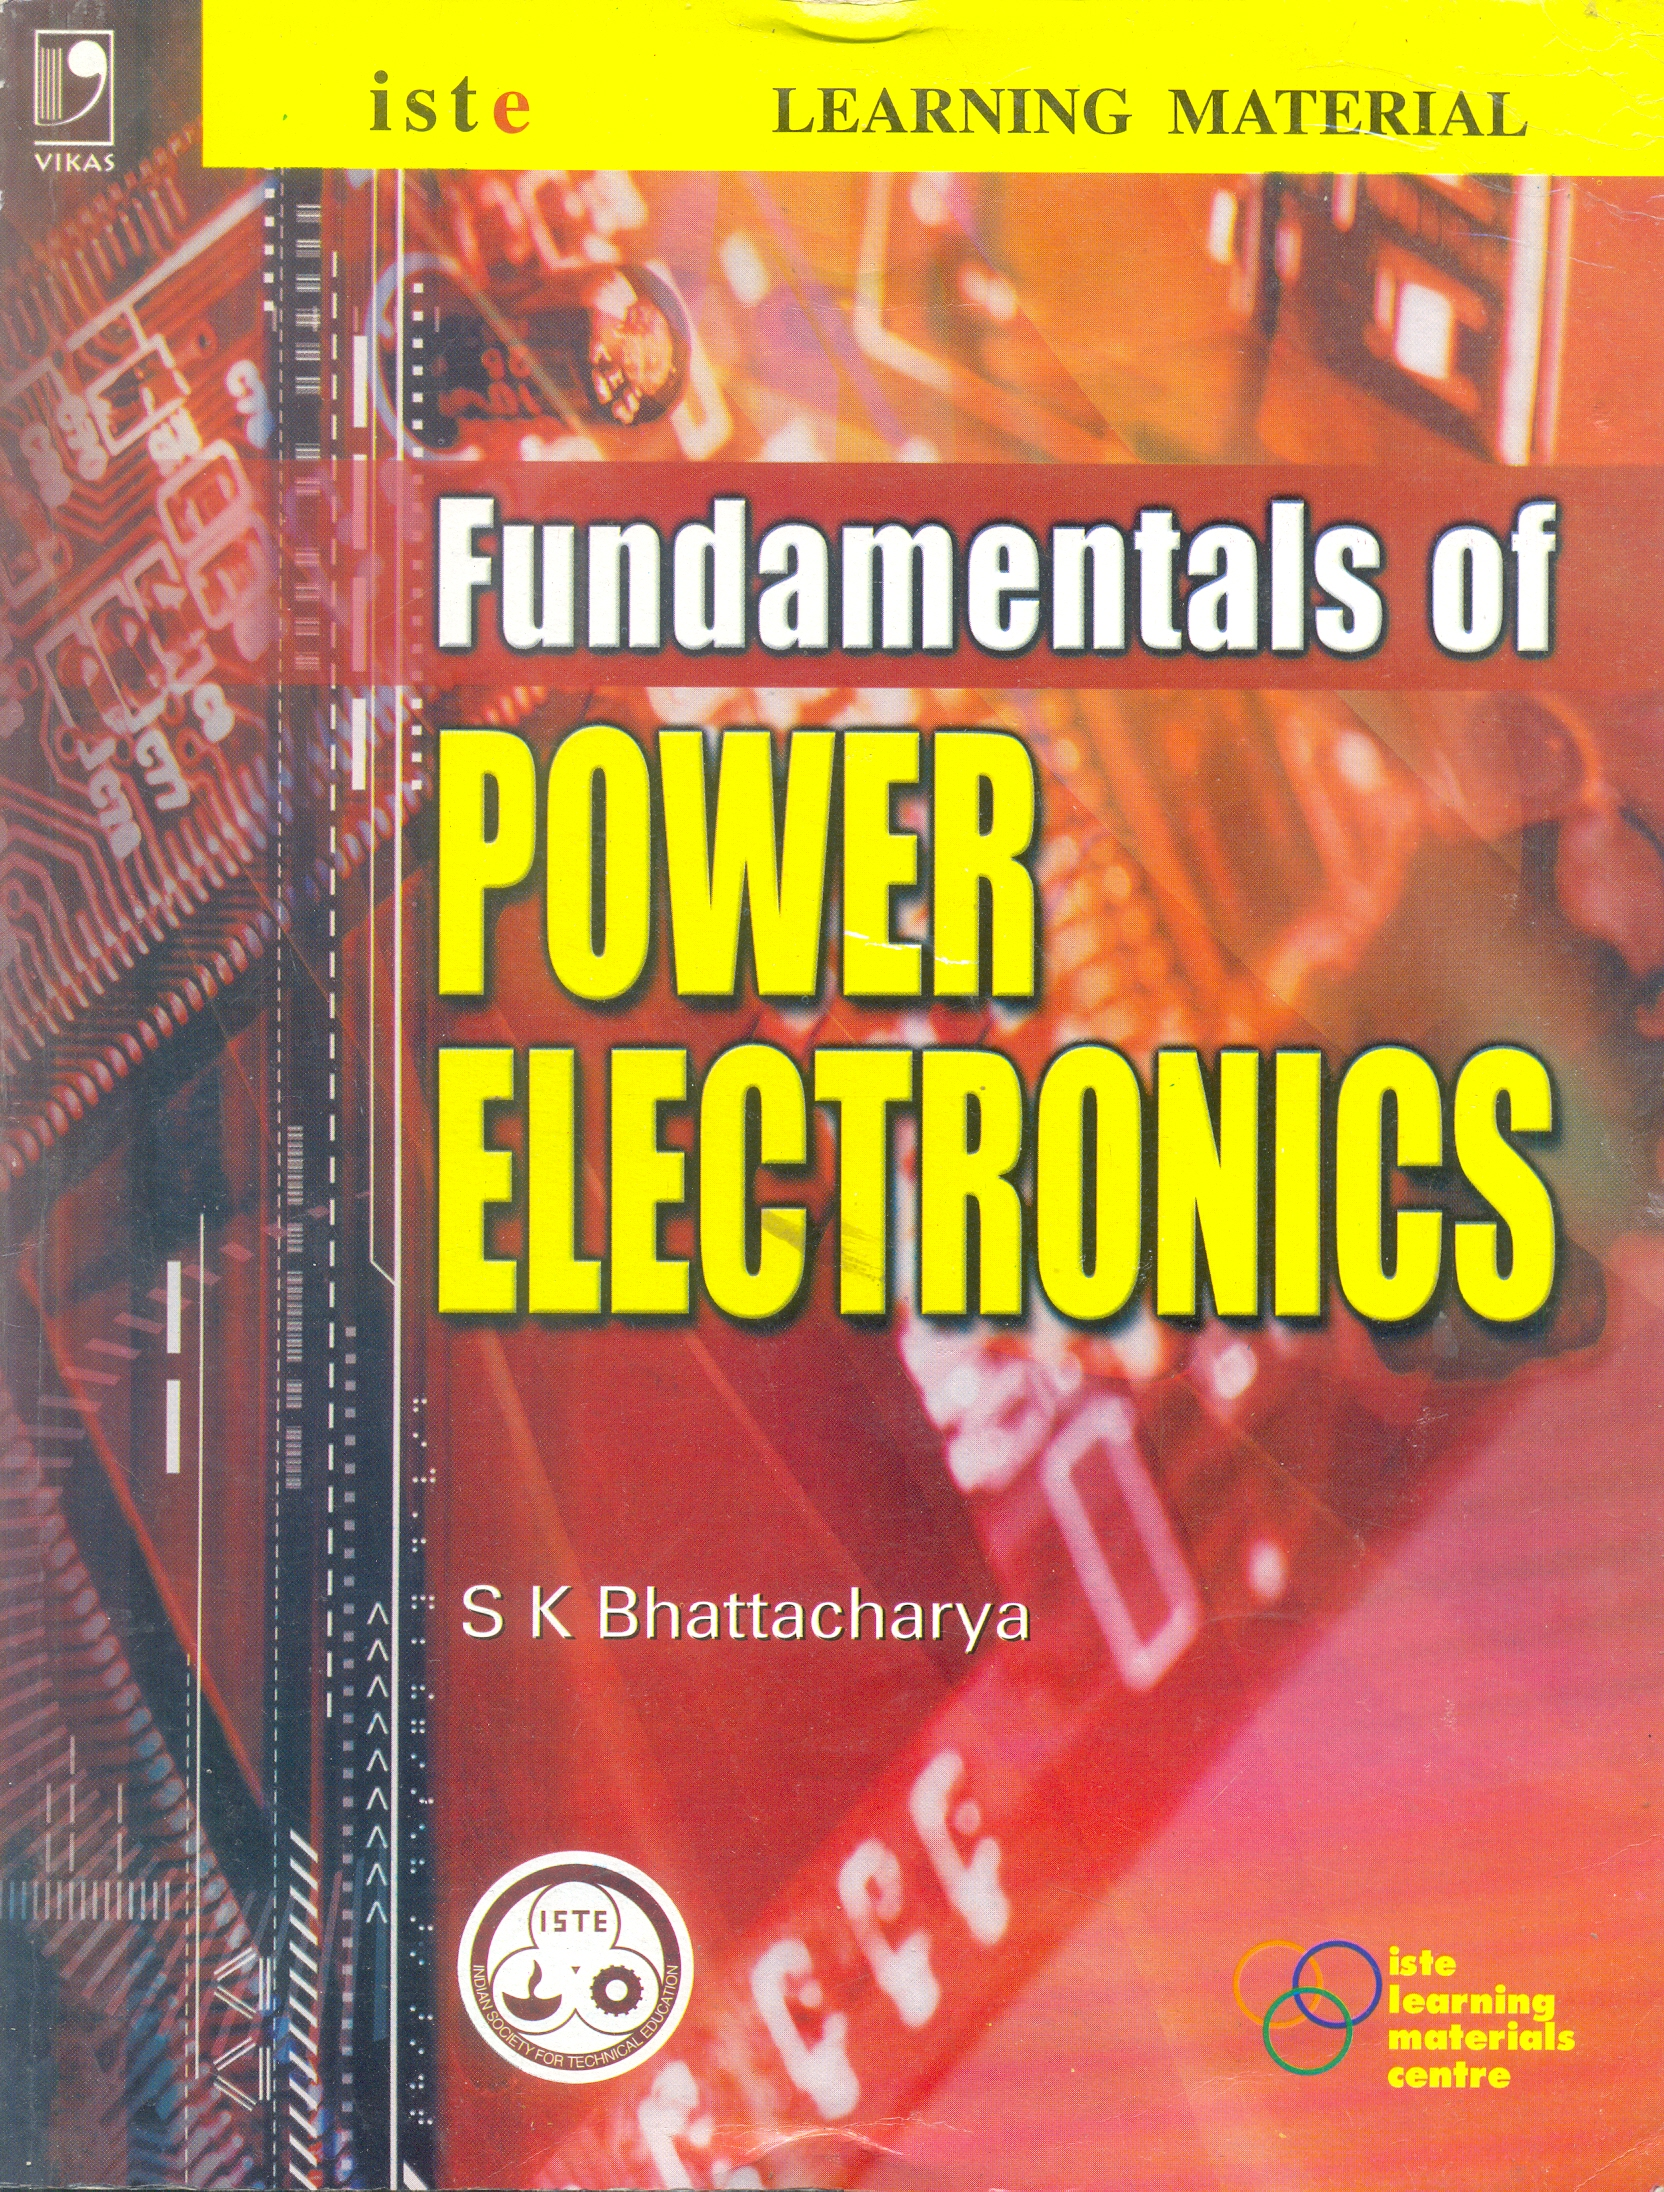 Fundamentals Of Power Electronics By S K Bhattacharya border=